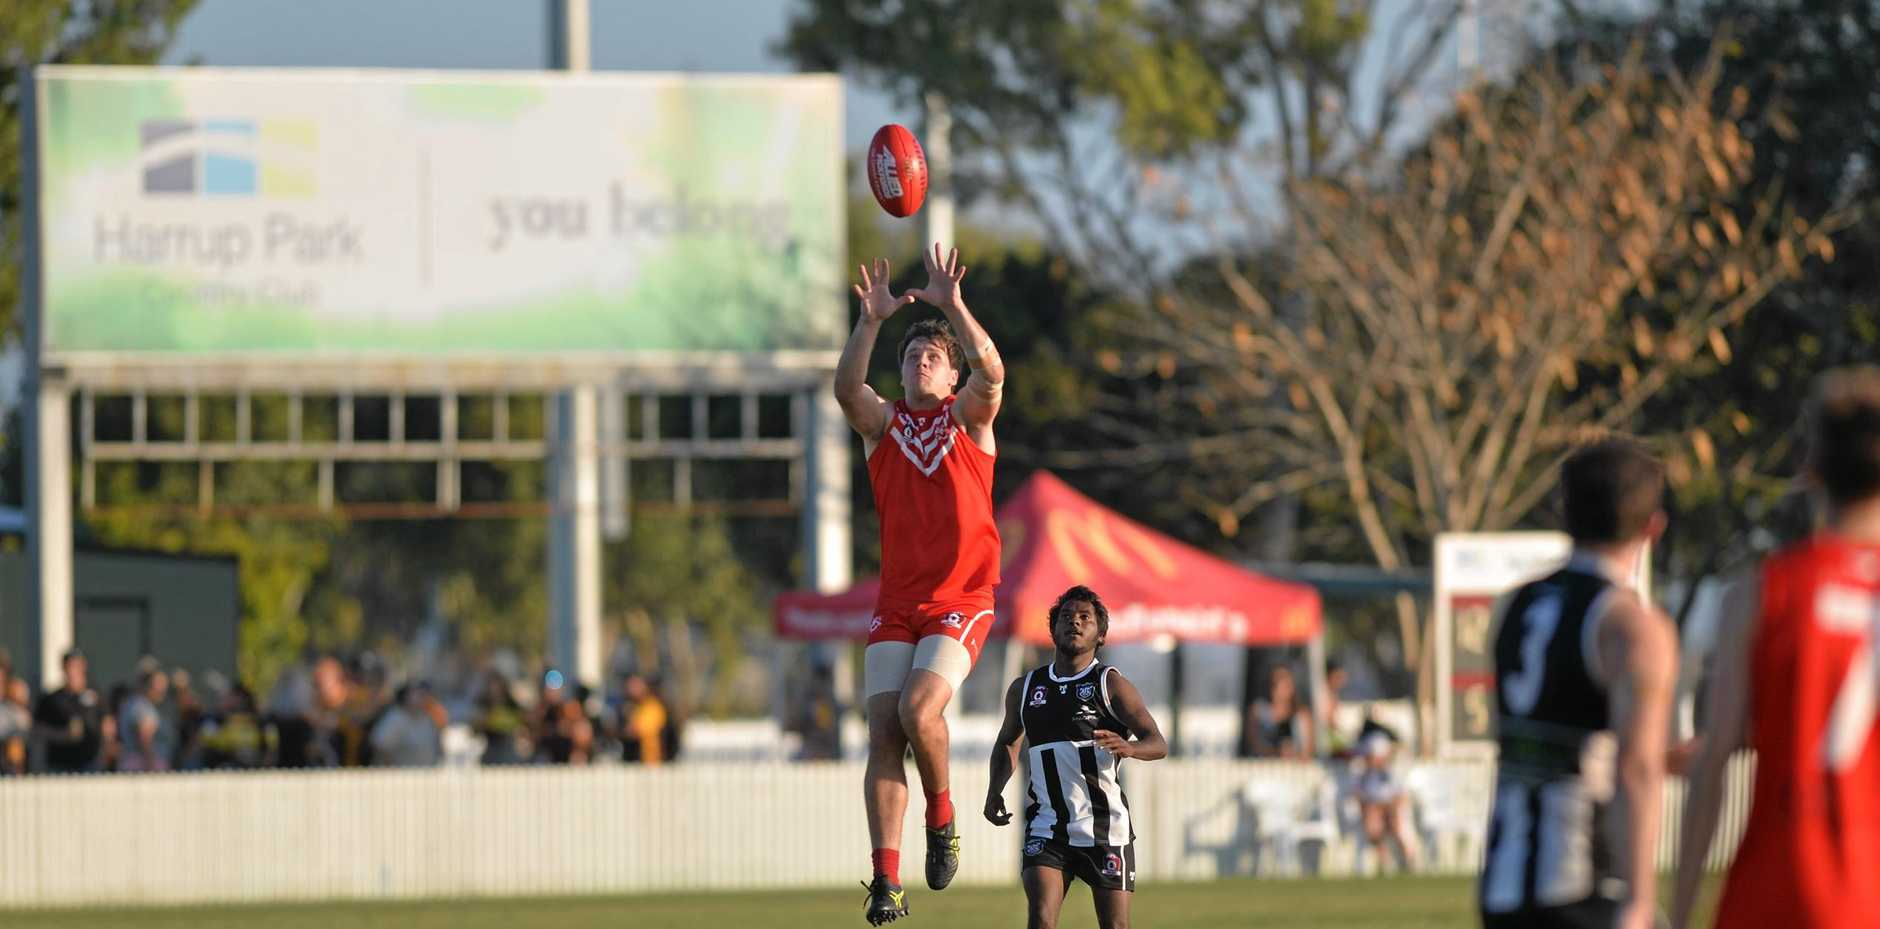 TAKING FLIGHT: Eastern Swans' Luke Ball leaps to take an overhead mark in the preliminary final against Mackay Magpies.